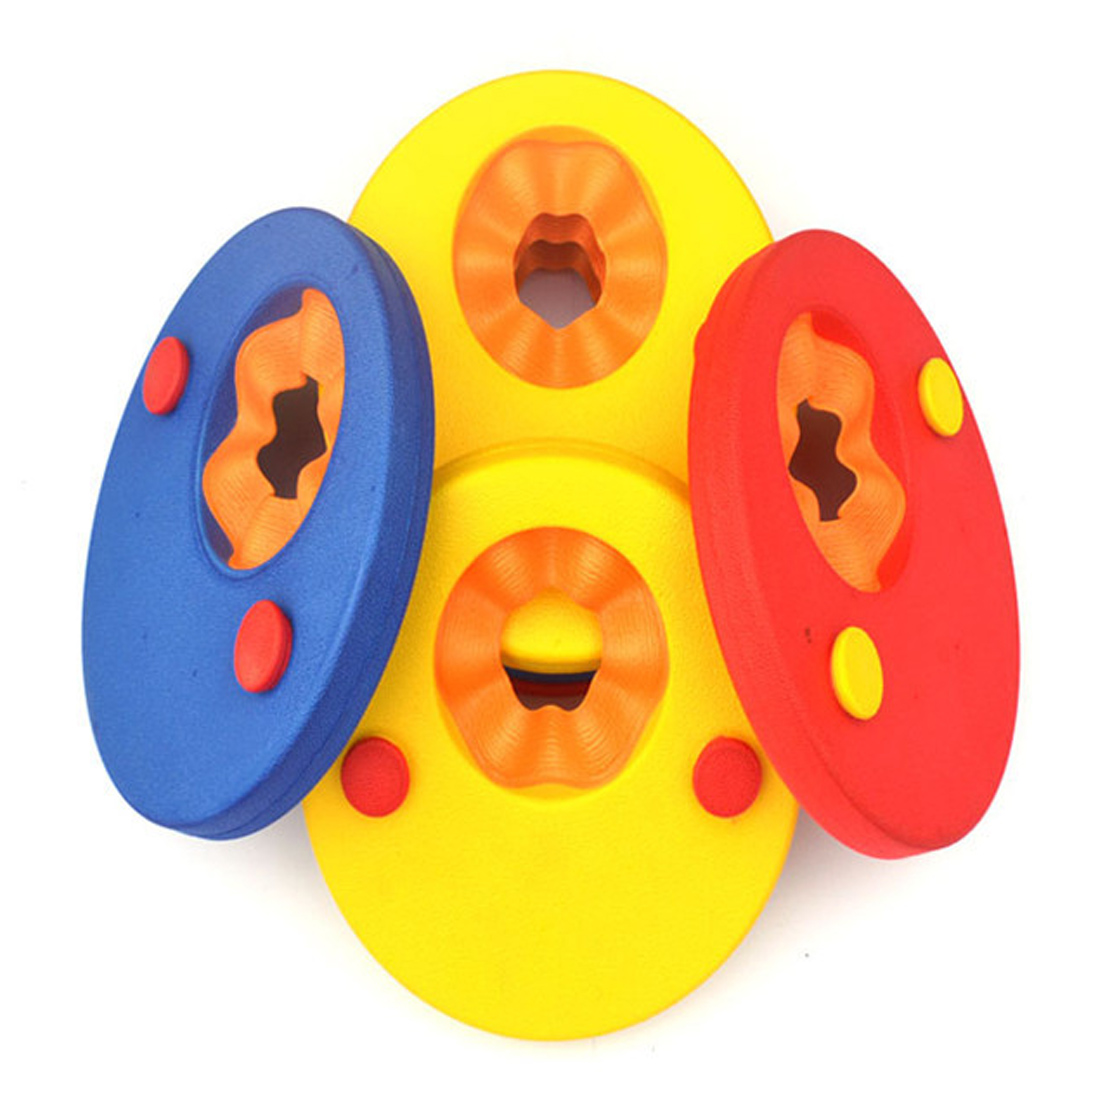 Hot 1PC Foam Baby Swimming Exercises Circles Rings Swim Discs Arm Bands Floating Sleeves Inflatable Pool Float Board Pool Toys